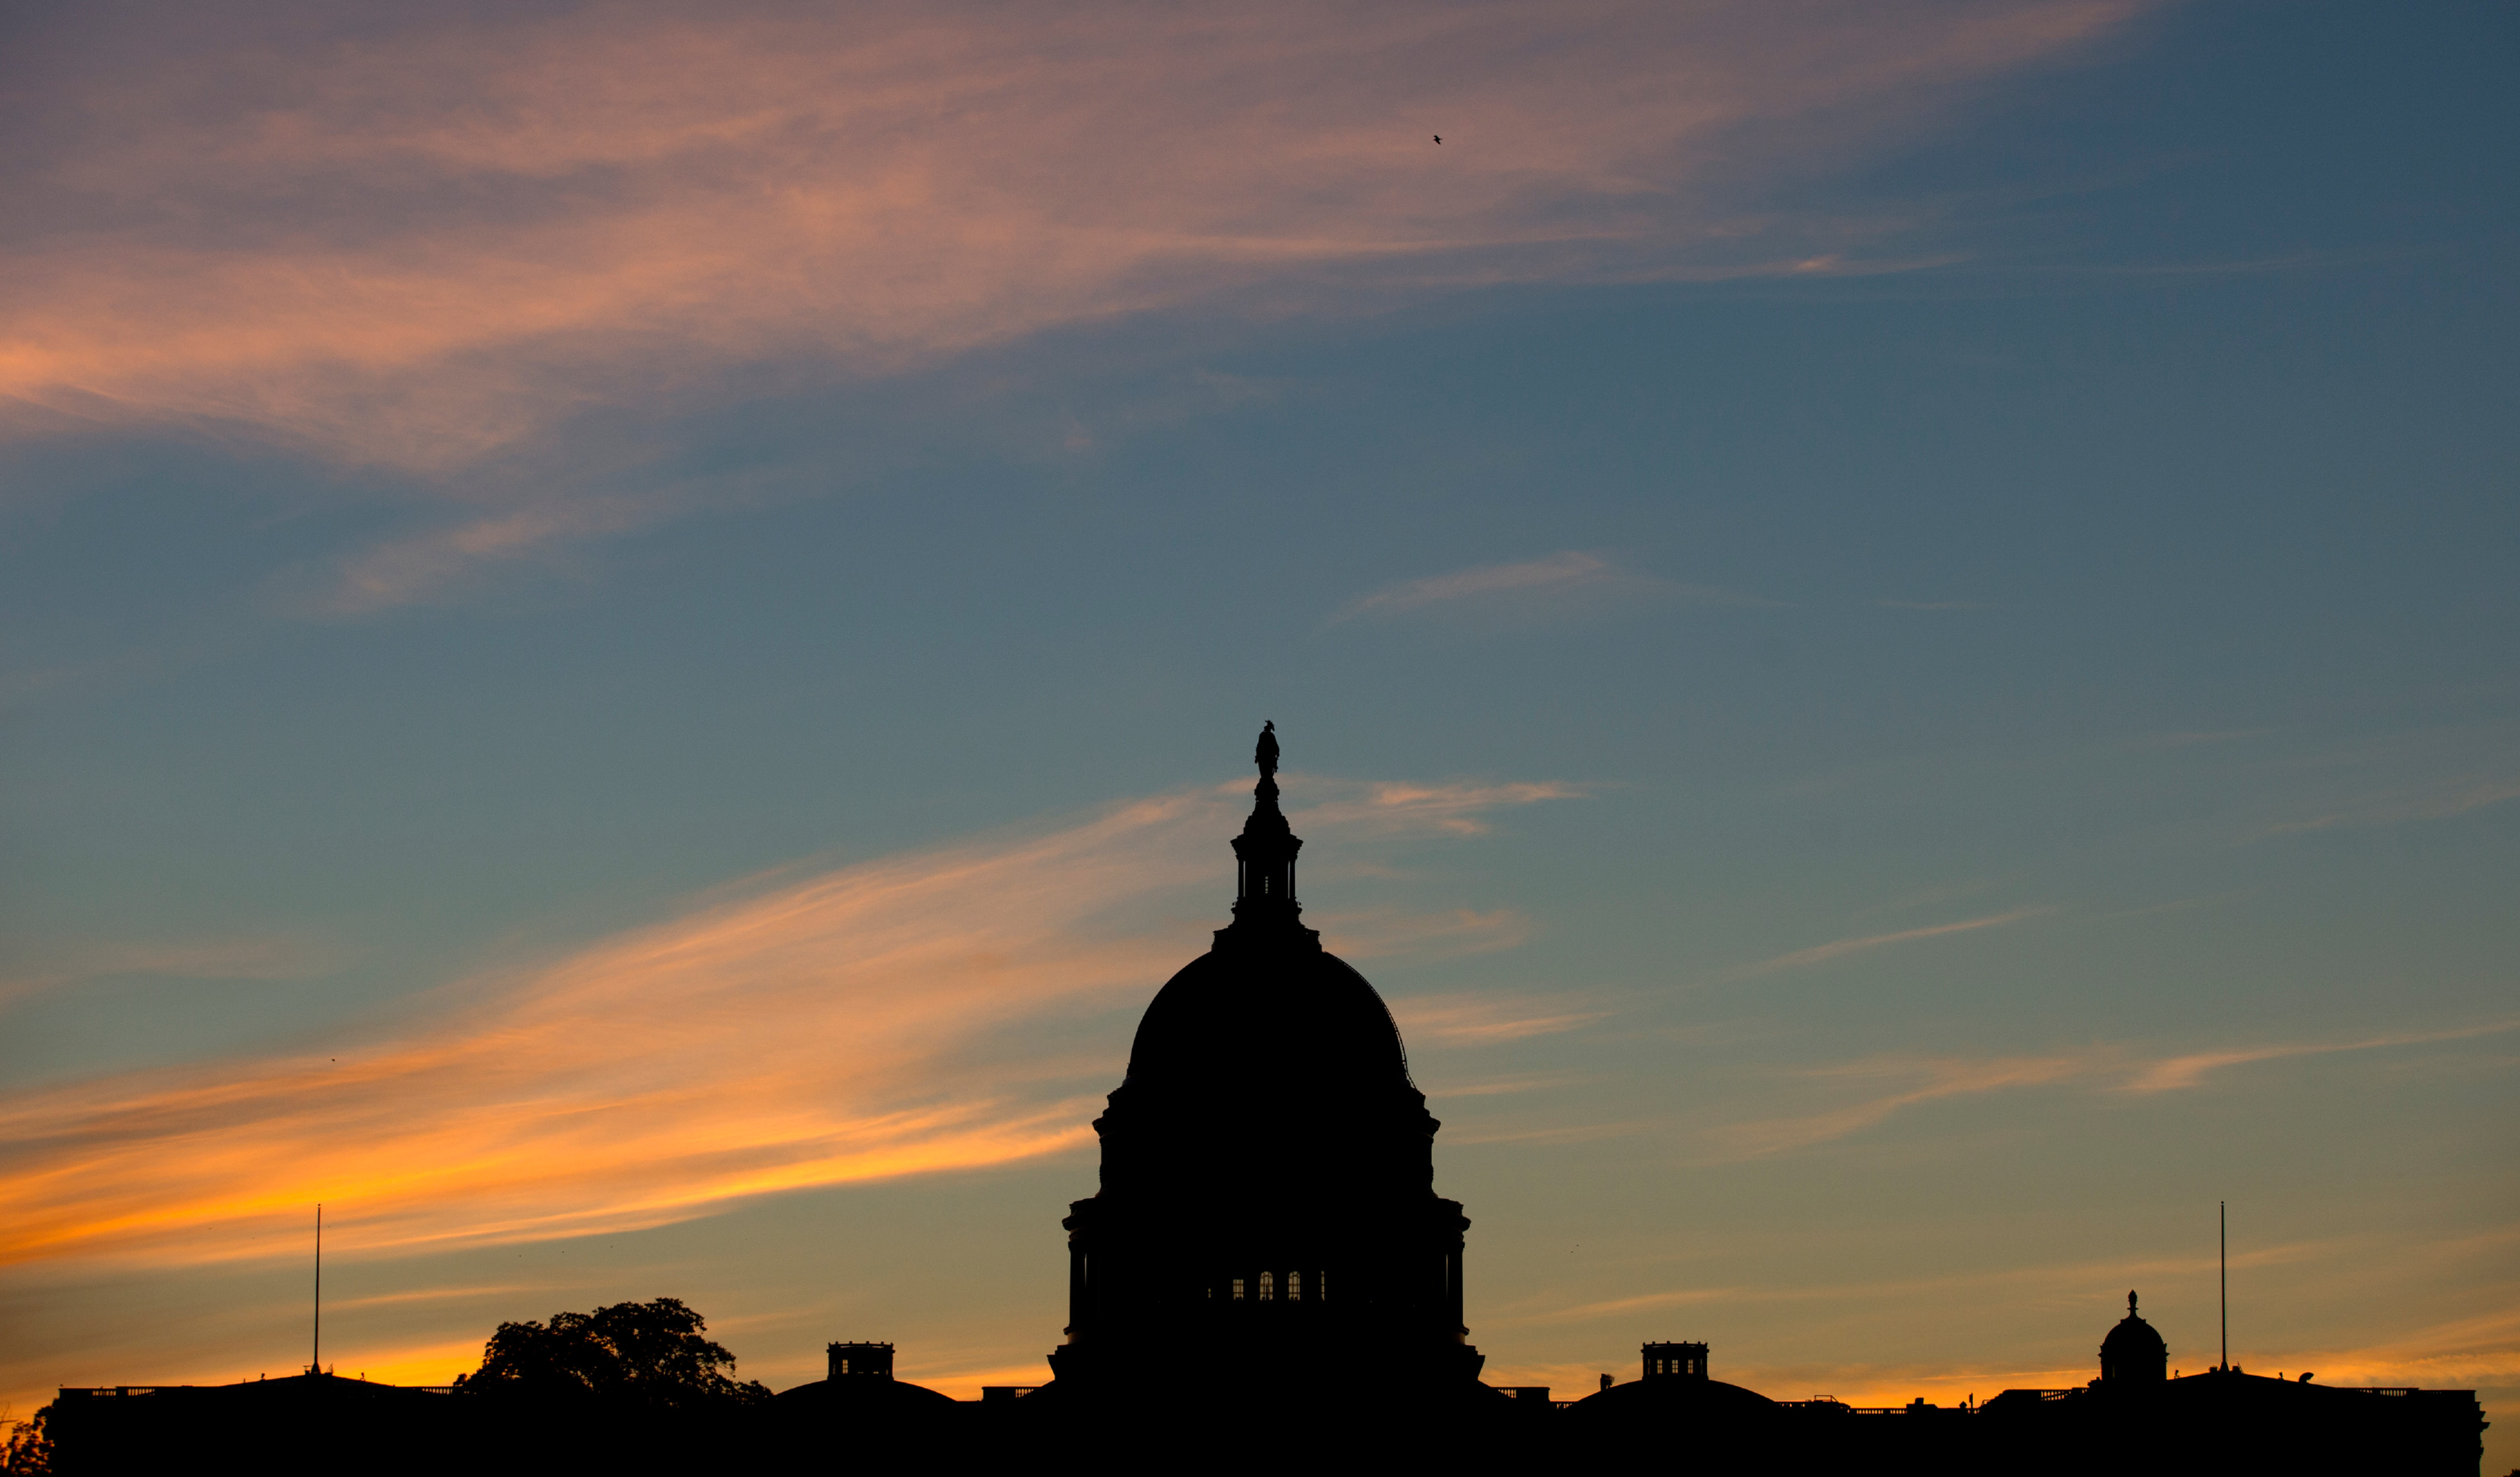 FILE - In this Sept. 15, 2013, file photo, the U.S. Capitol dome is silhouetted by the sunrise. The latest Associated Press-GfK poll holds some ominous signs for congressional Democrats going into the November elections. Overall, people are split between preferring Republicans or Democrats to win control of Congress. (AP Photo/Carolyn Kaster, File)